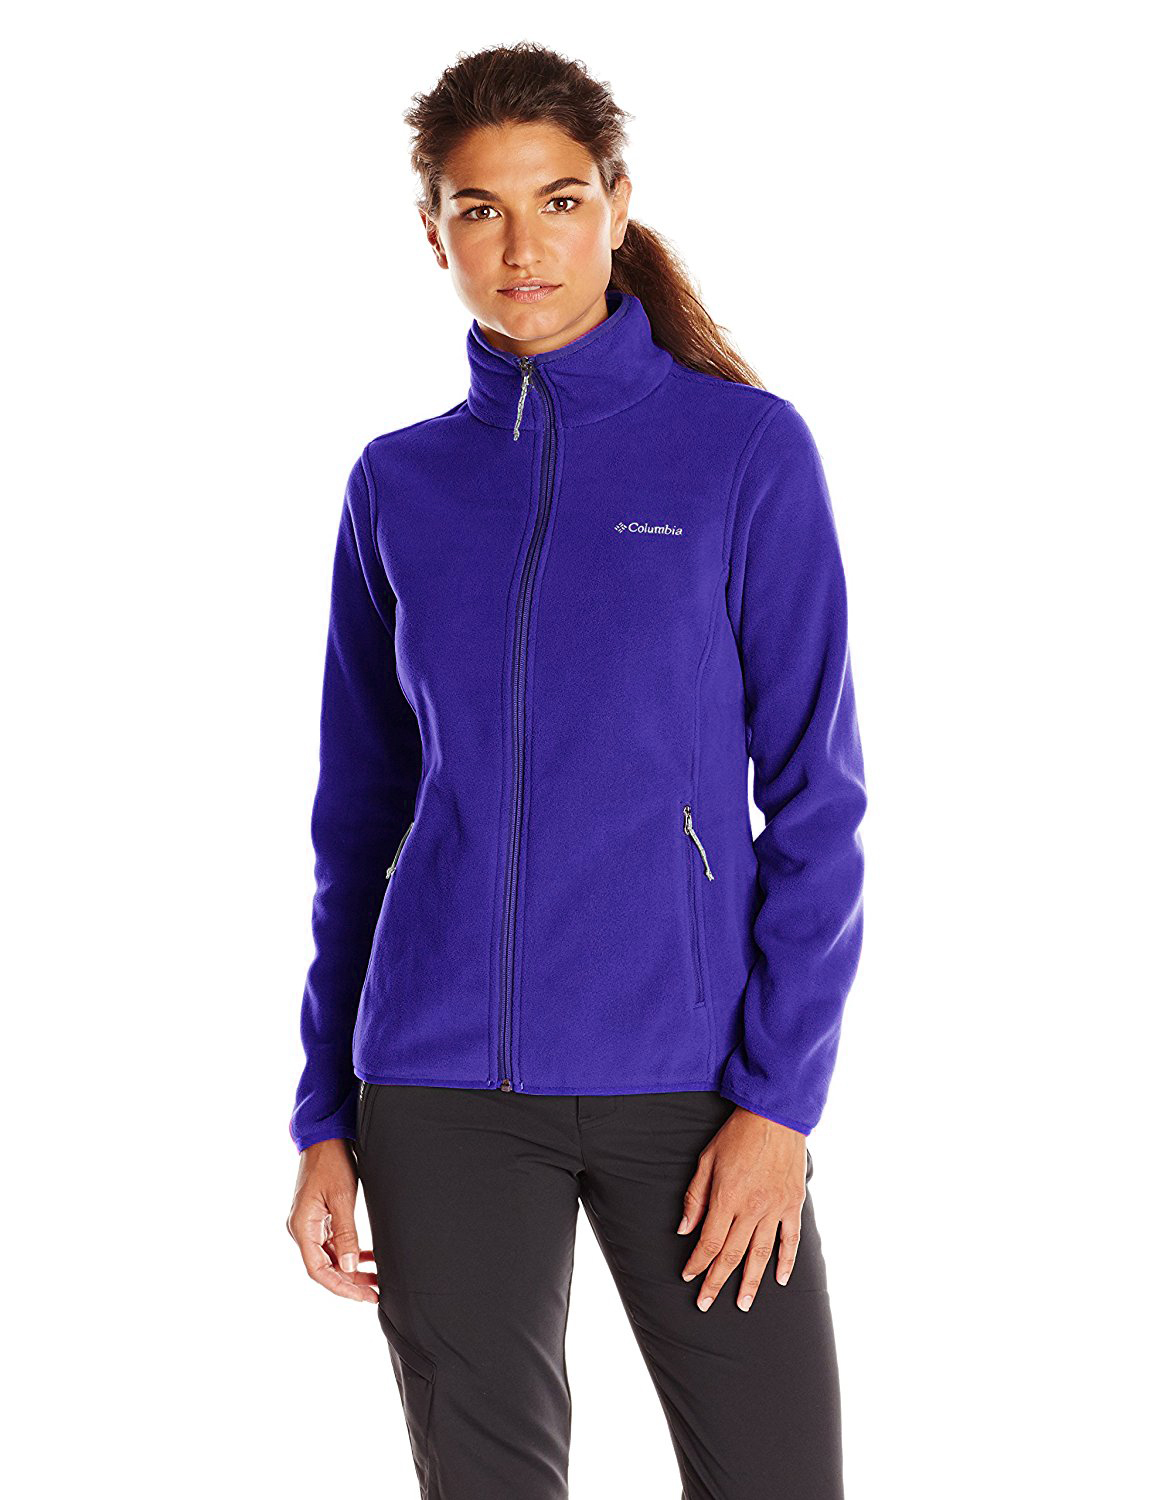 Columbia Women's Adventure Ridge Full Zip Fleece Jacket สำหรับอุณหภูมิ 7 ถึง 10 องศา - Light Grape